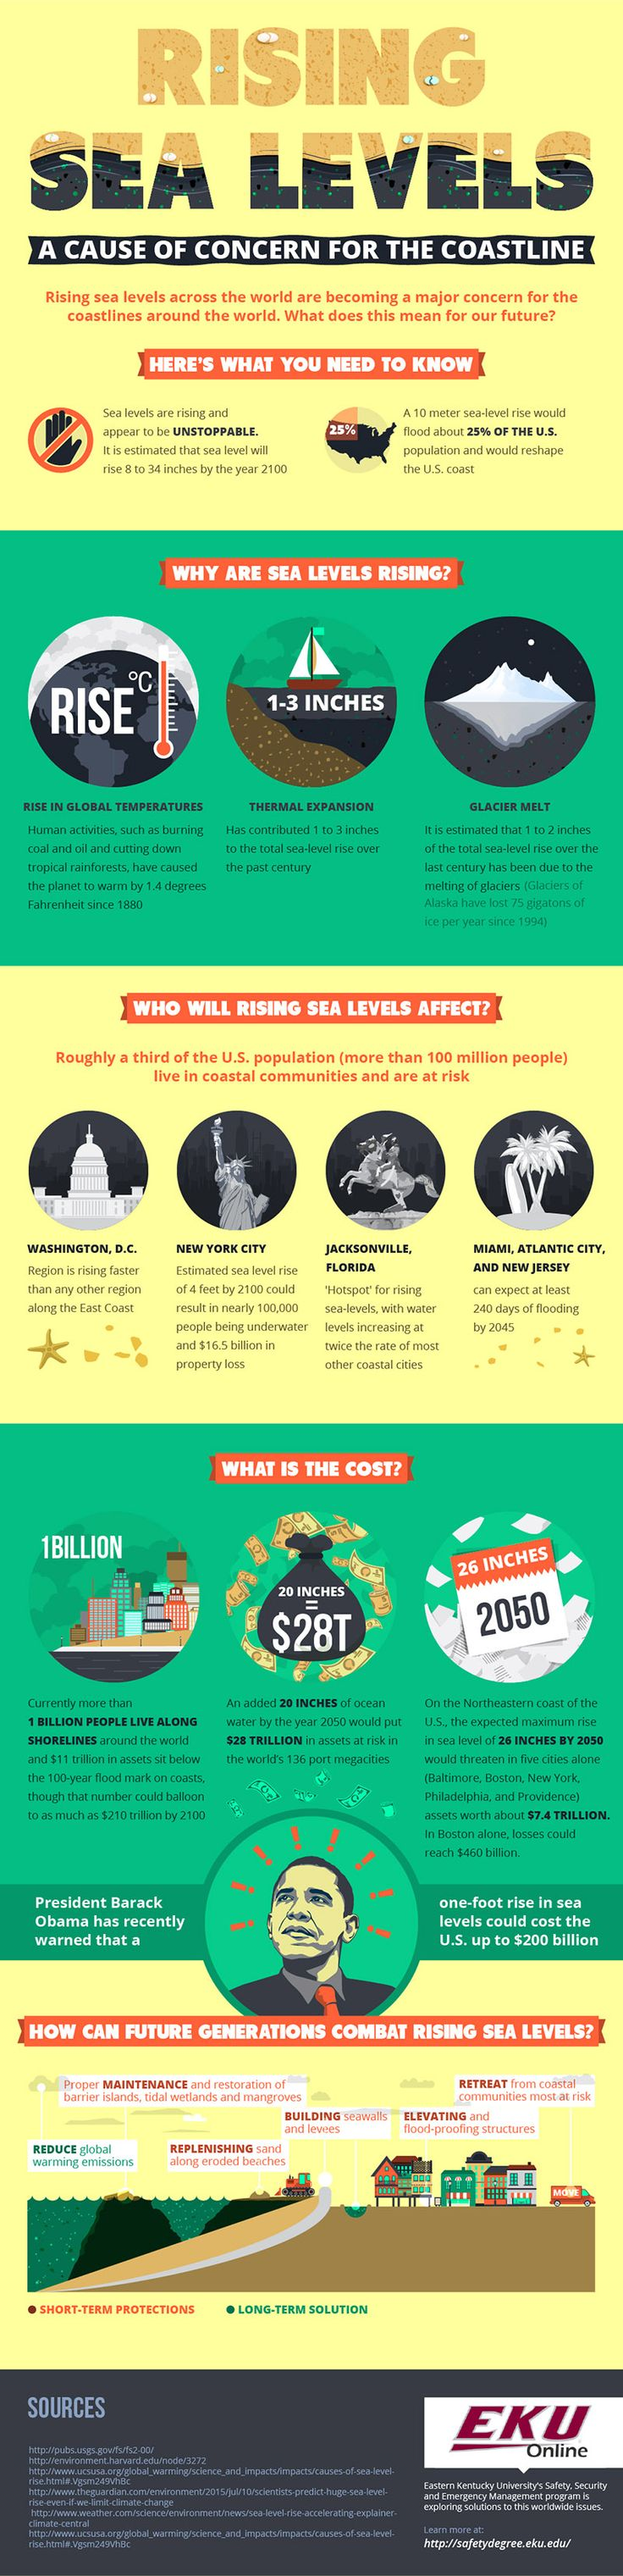 What you need to know about rising sea levels